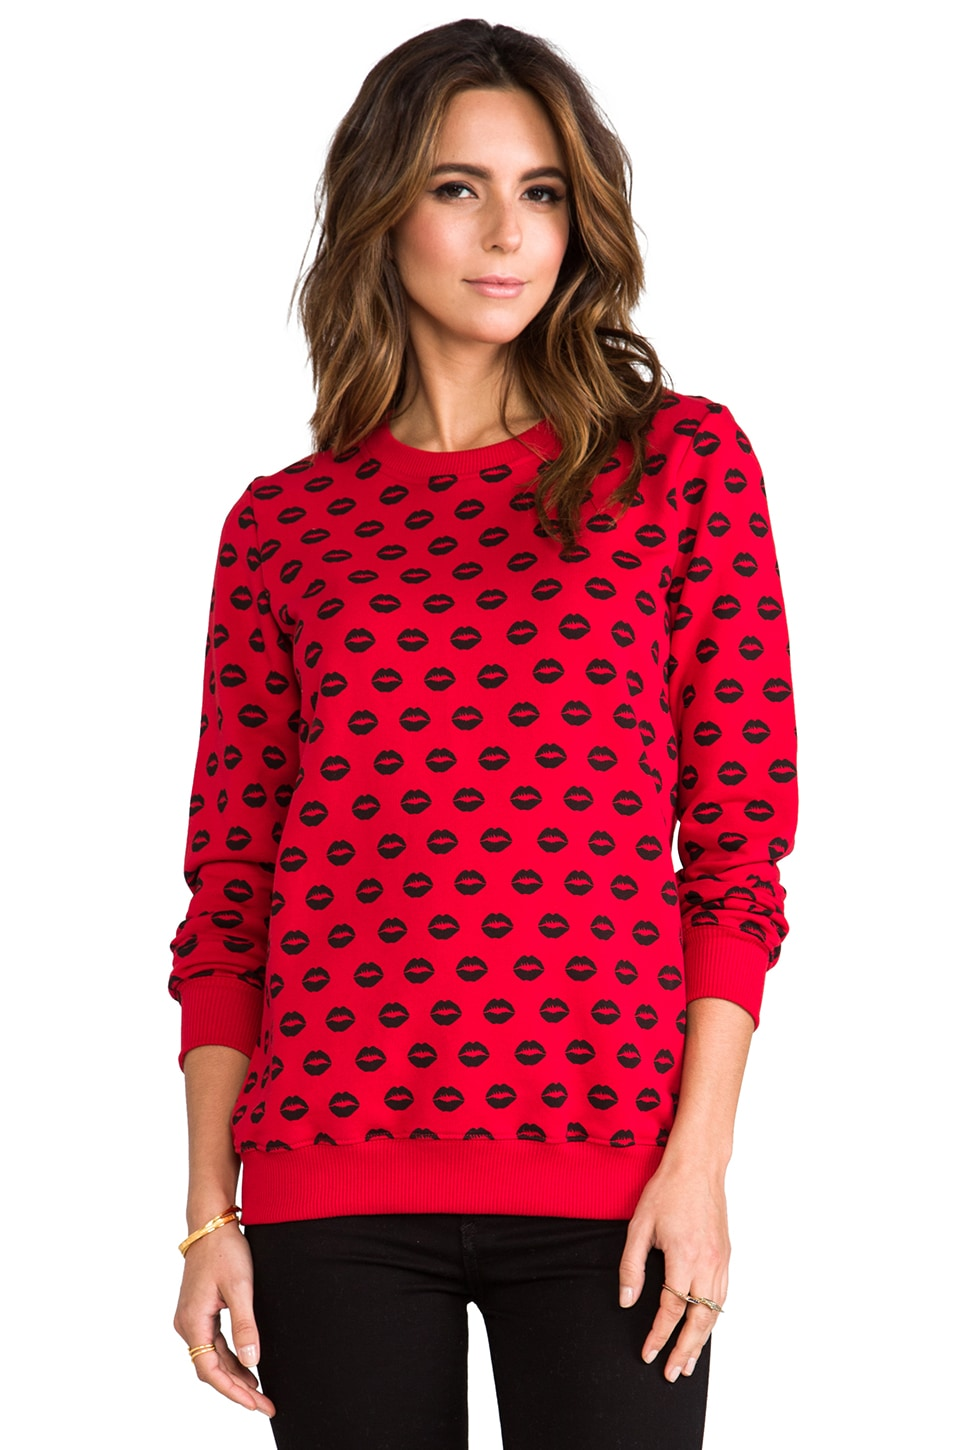 Markus Lupfer Lip Print Sweatshirt in Red